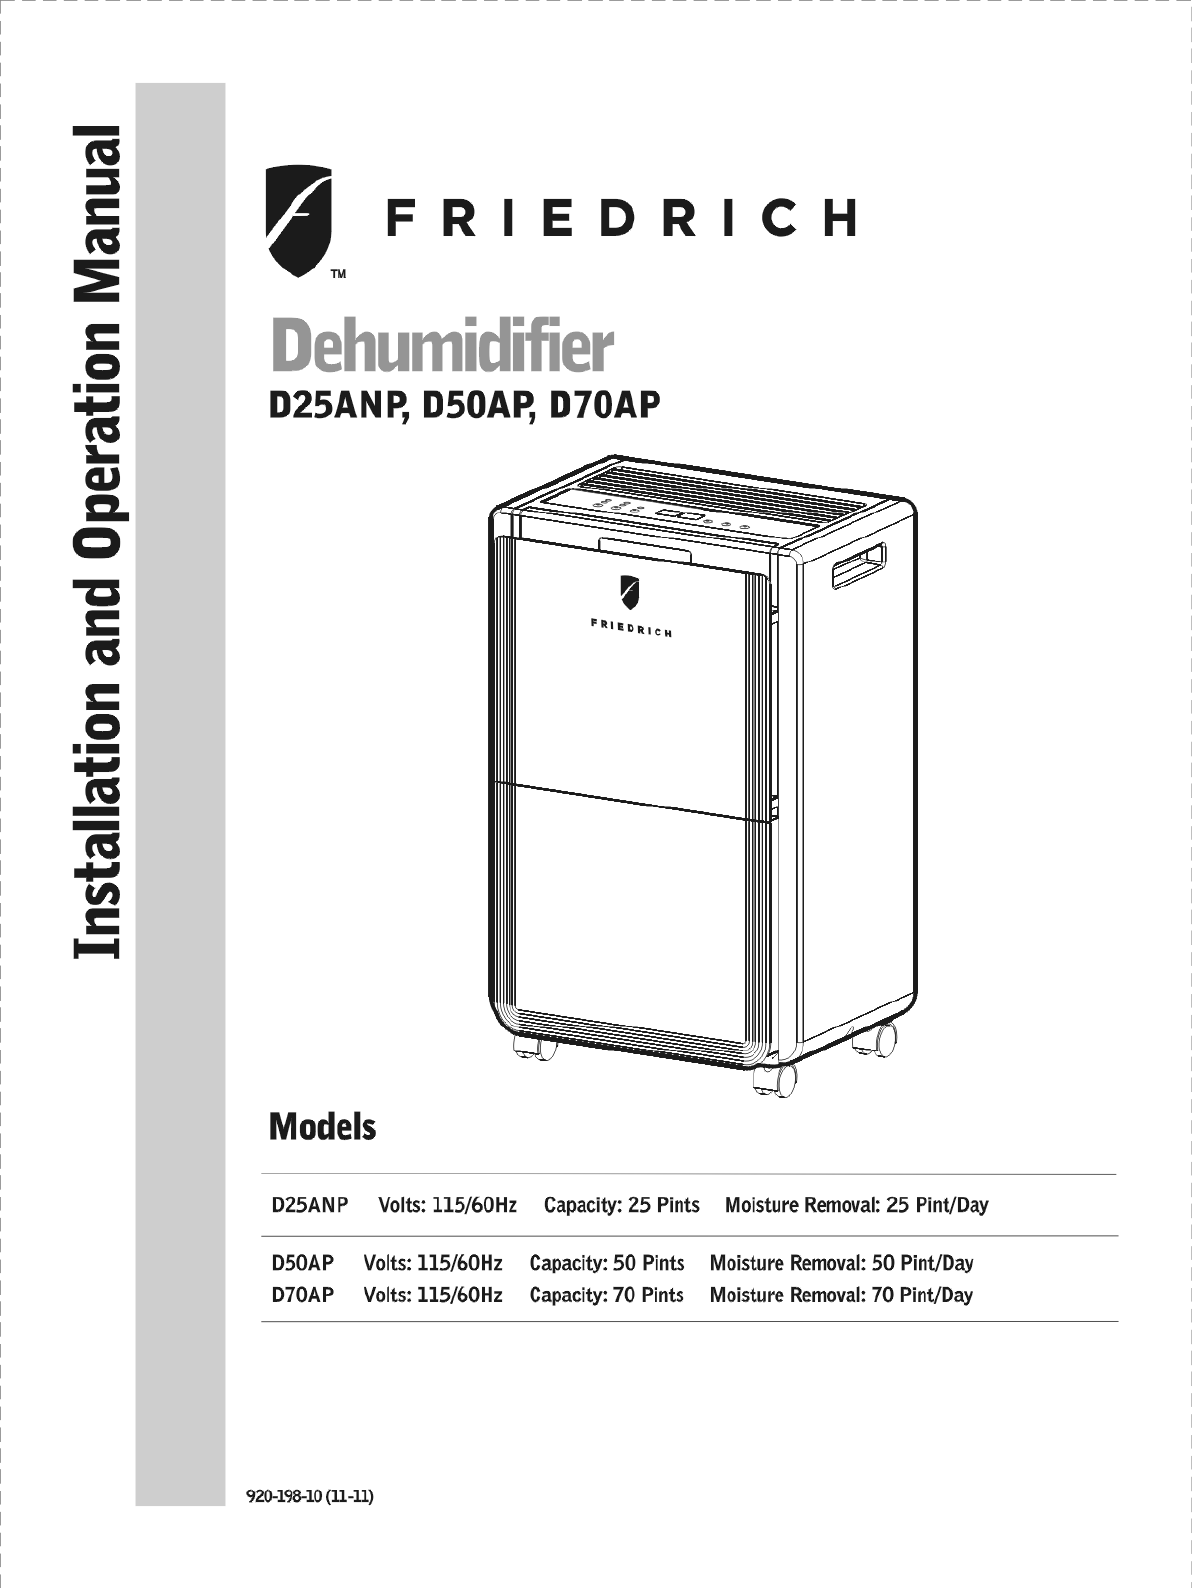 Friedrich Furnace Manual Air Conditioners Wiring Diagram Conditioner Troubleshooting Series Installation